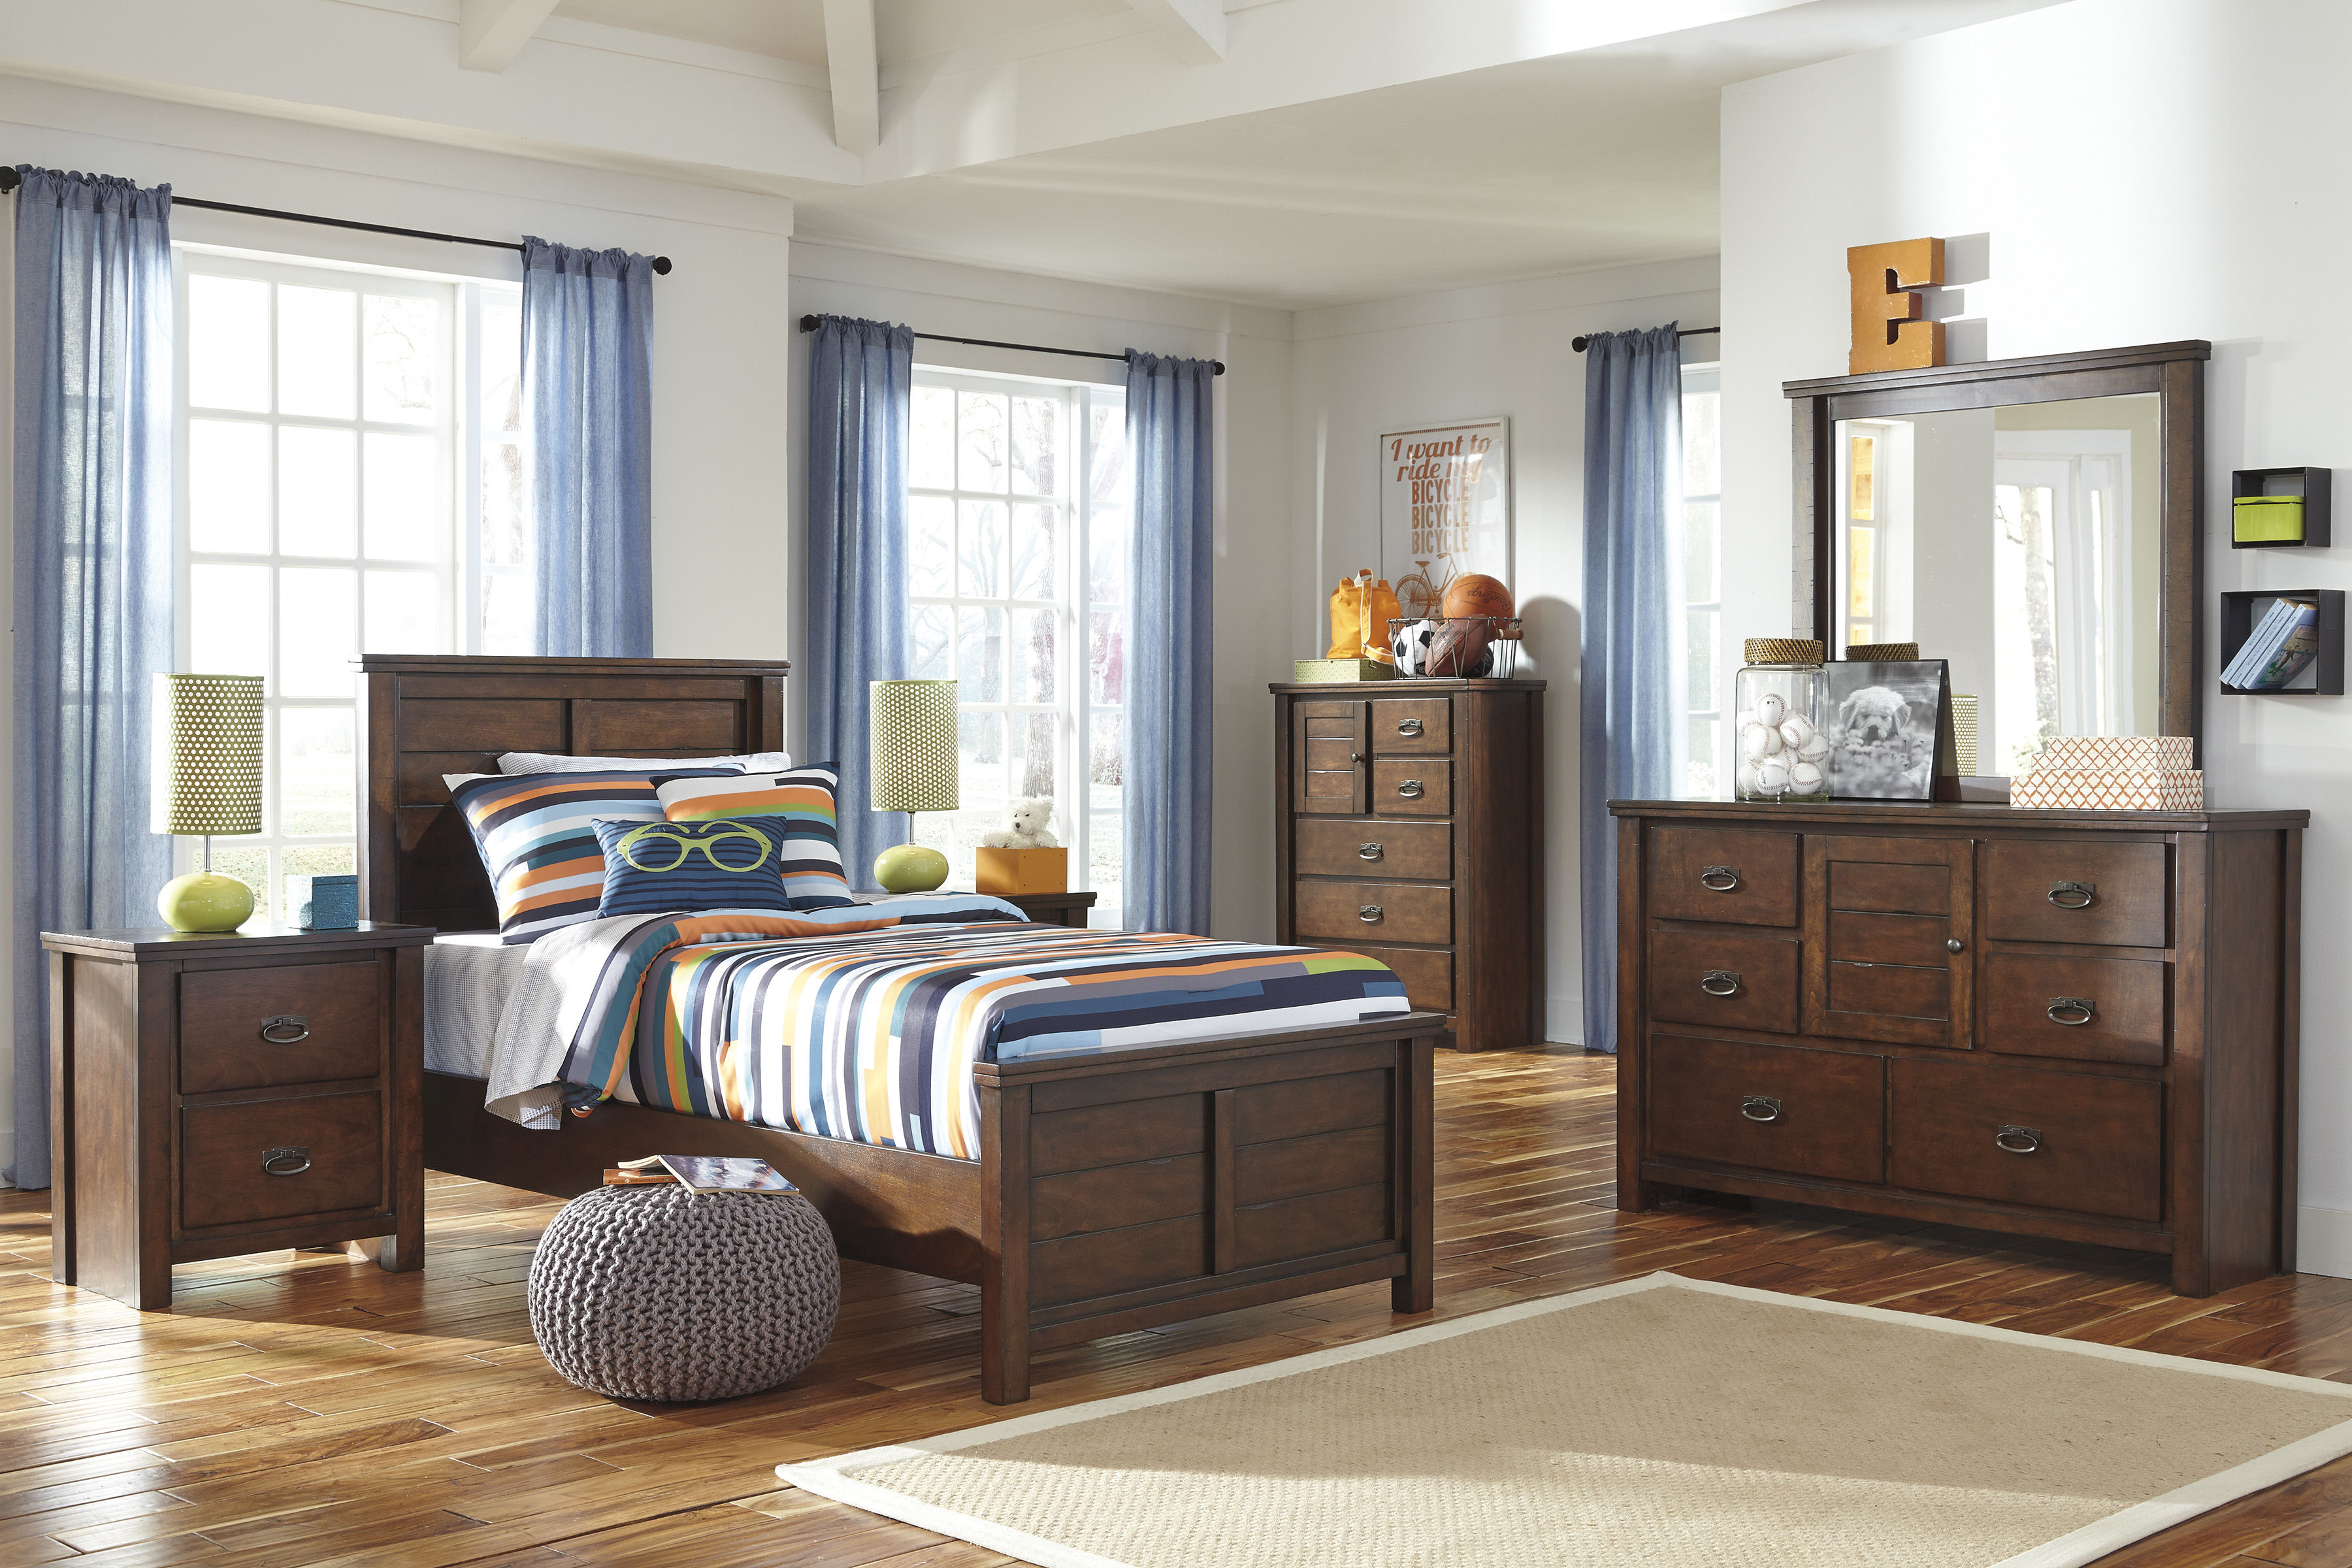 Ashley Furniture Ladiville 2pc Kids Bedroom Set With Twin